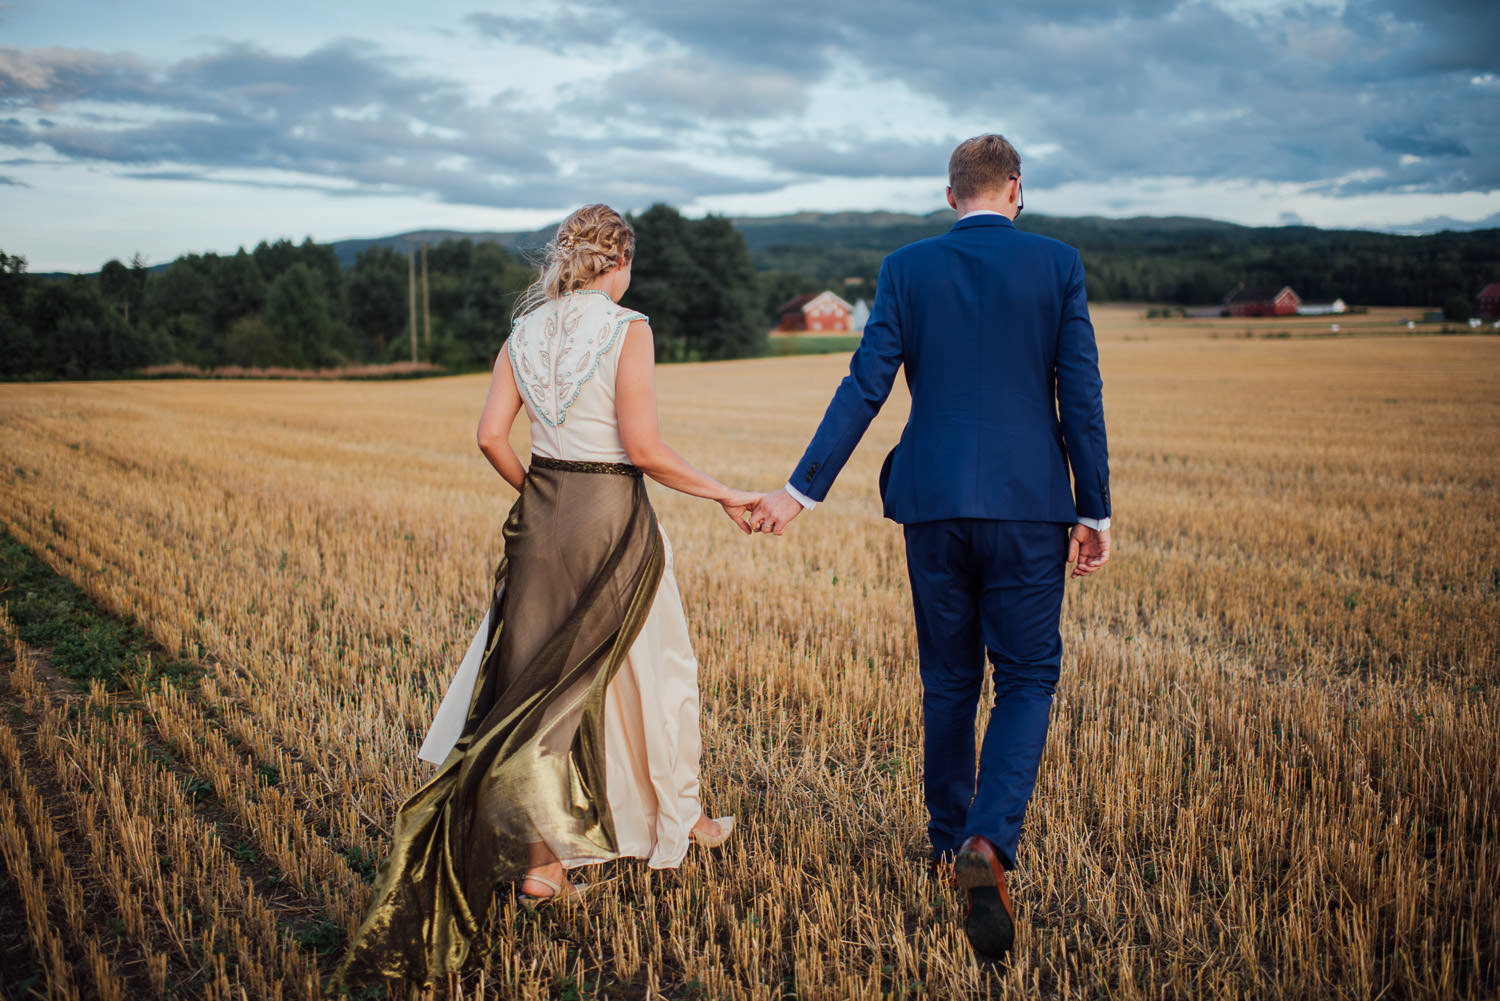 golden hour in Norwegian Barn Wedding by norway destination wedding photographer the shannons photography